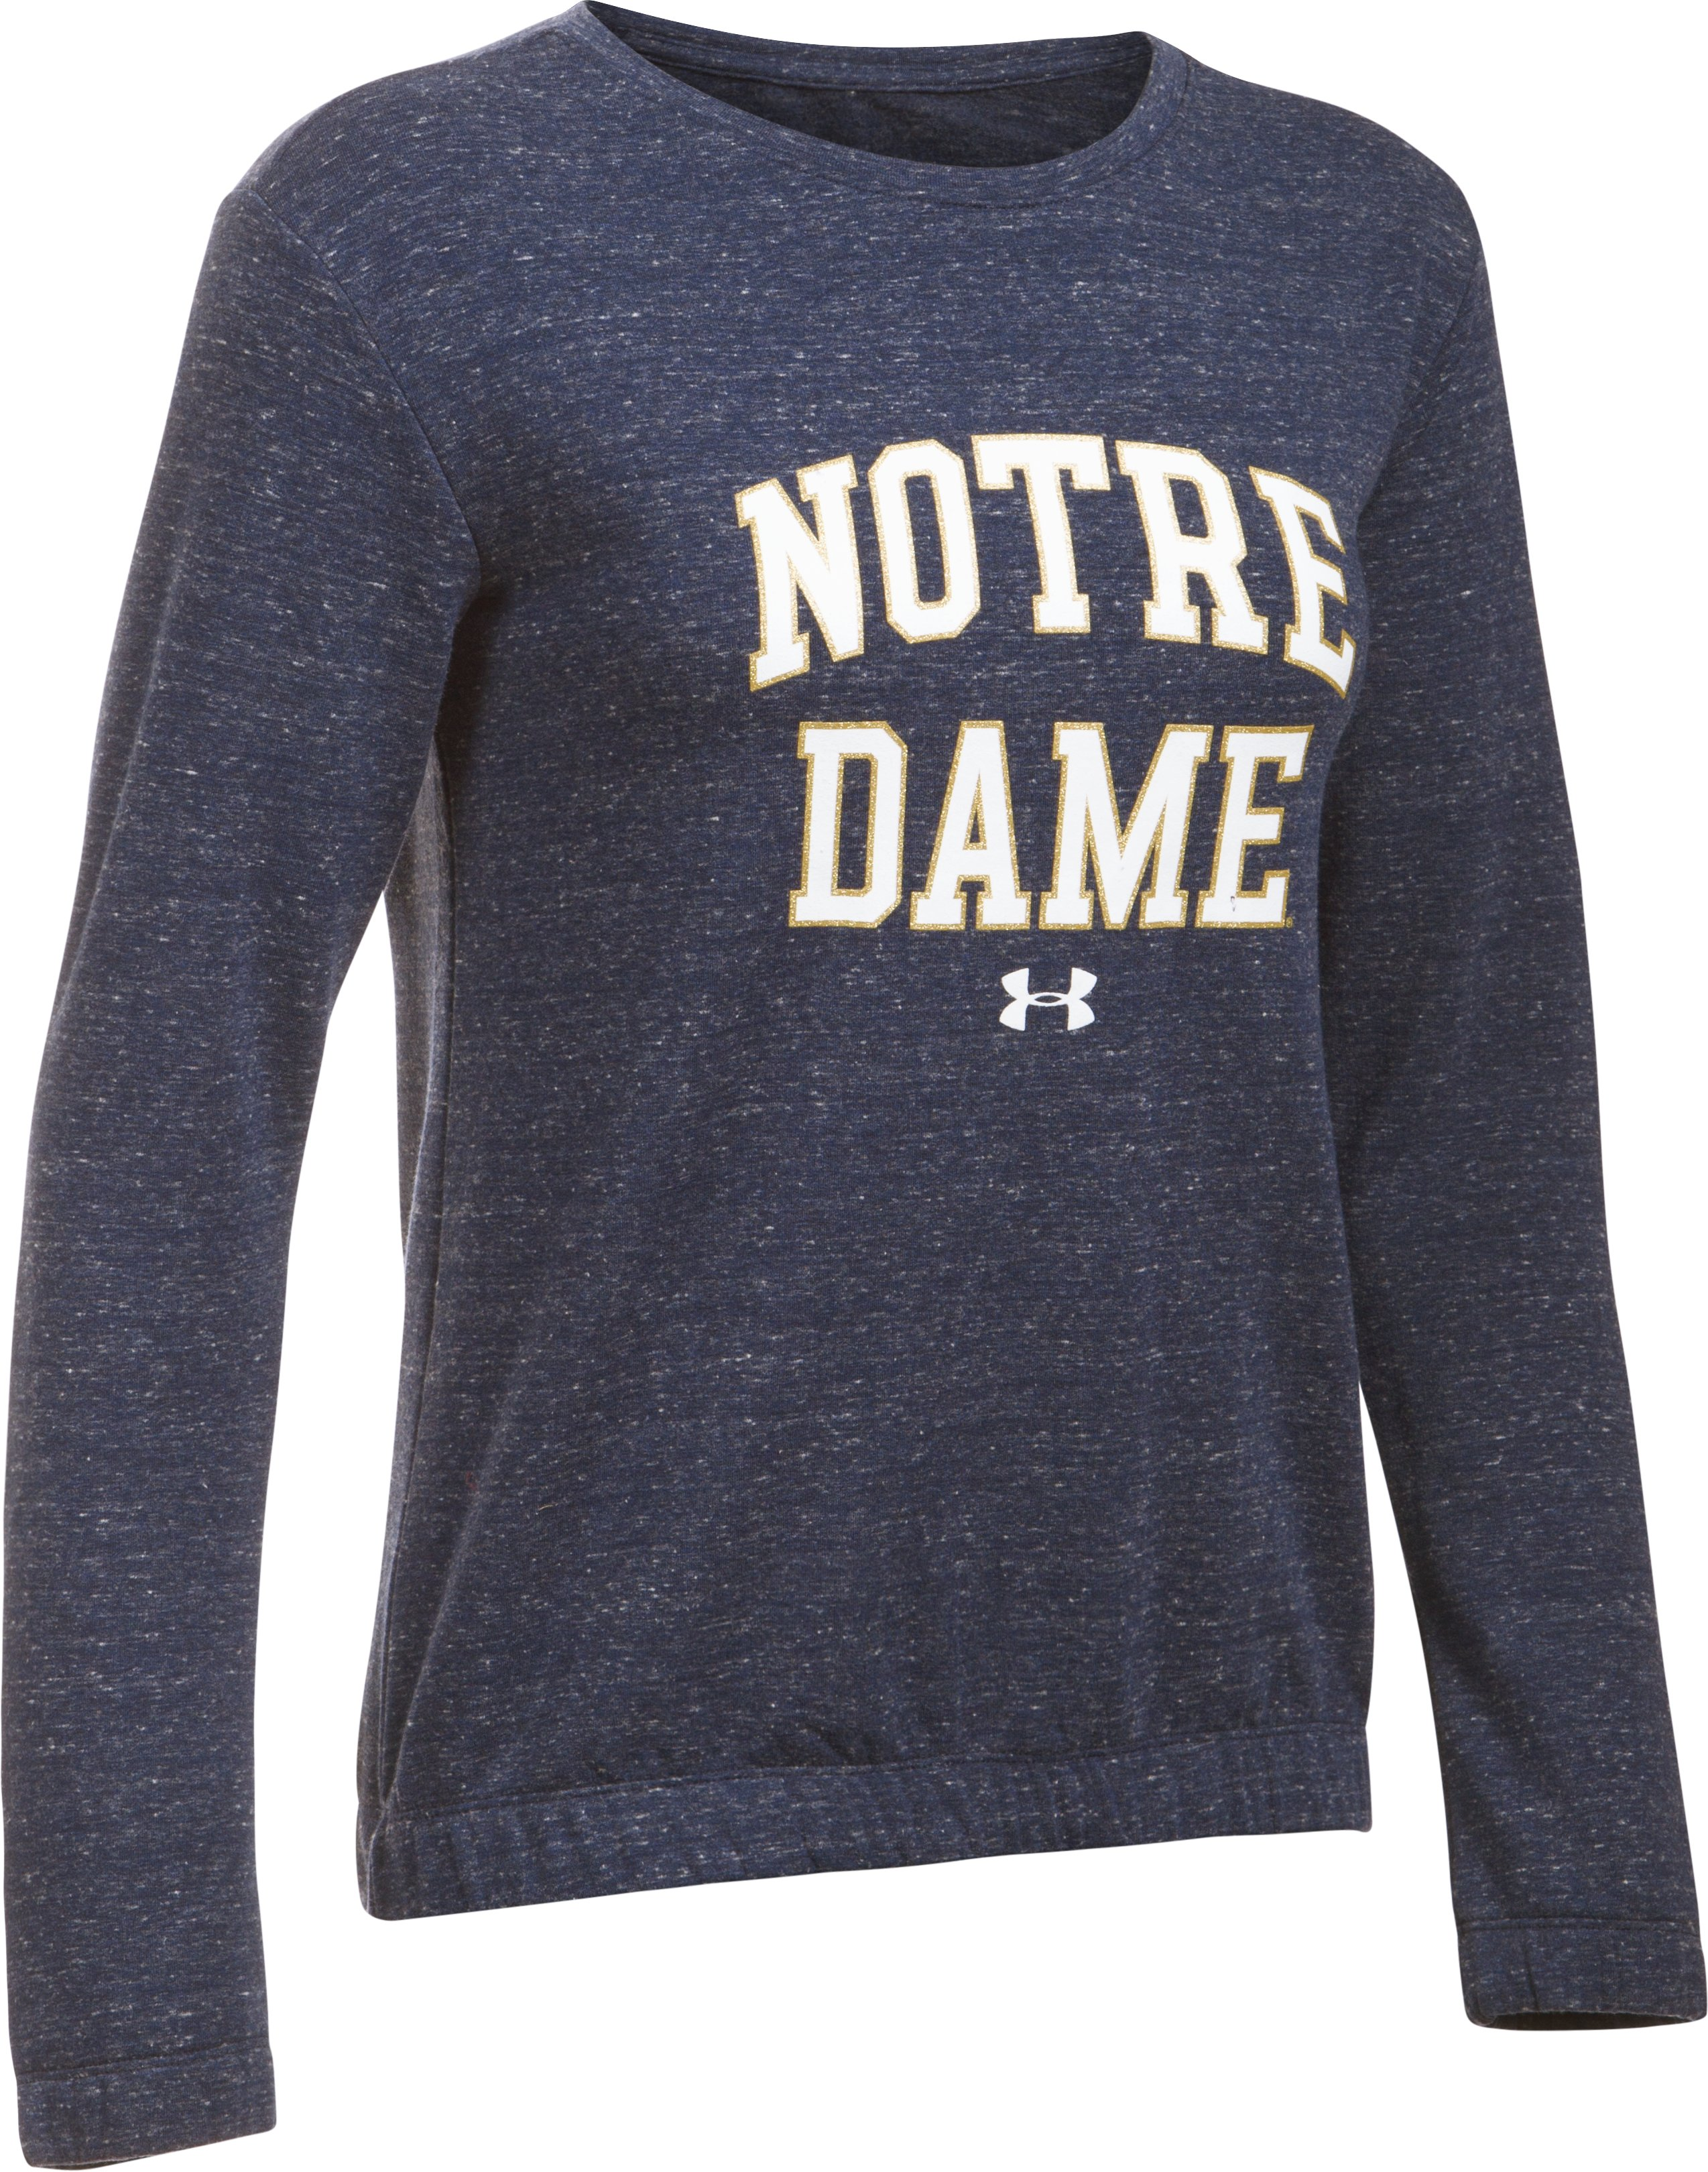 Women's Notre Dame Fleece Crew, Midnight Navy